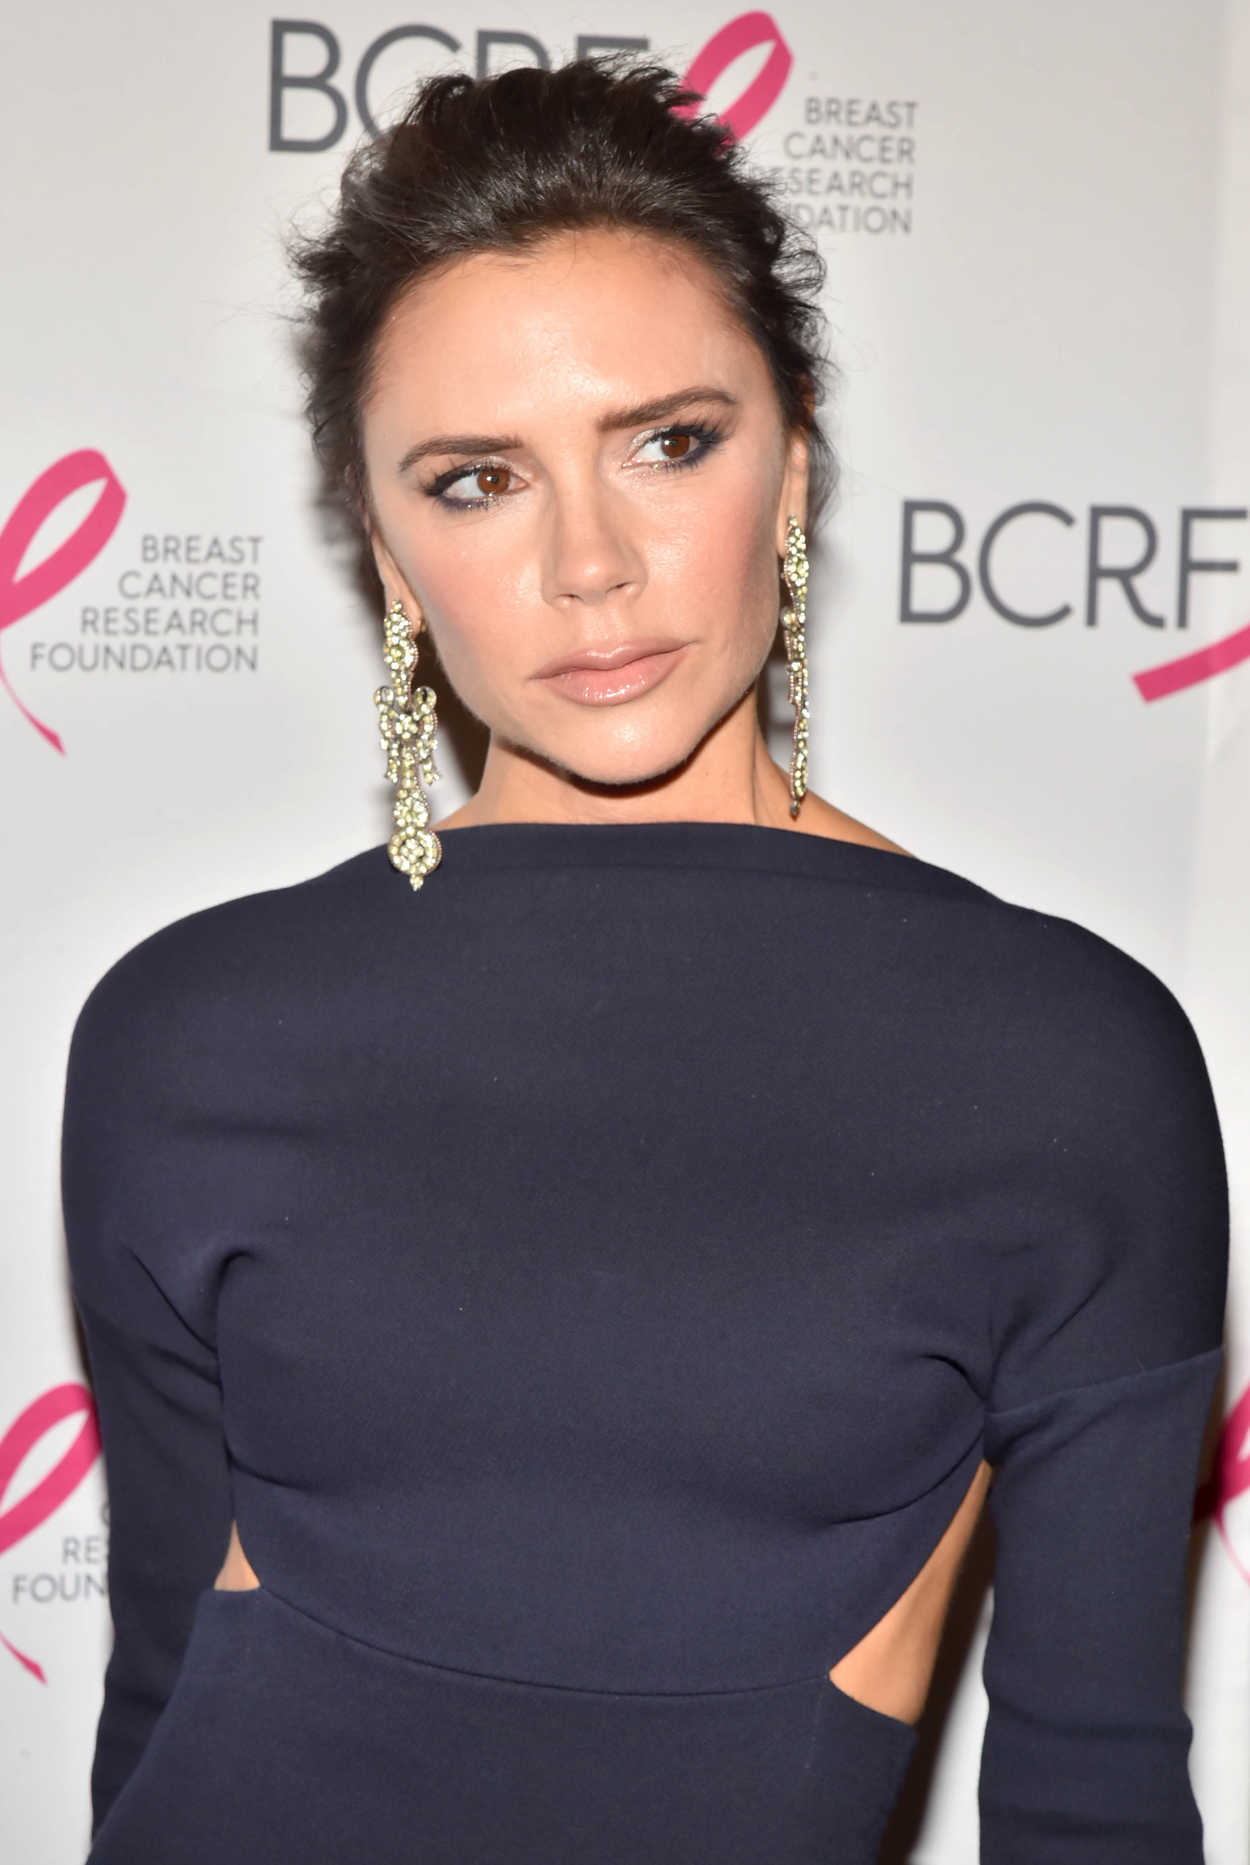 Victoria Beckham Attends the 2017 Breast Cancer Research ... Victoria Beckham